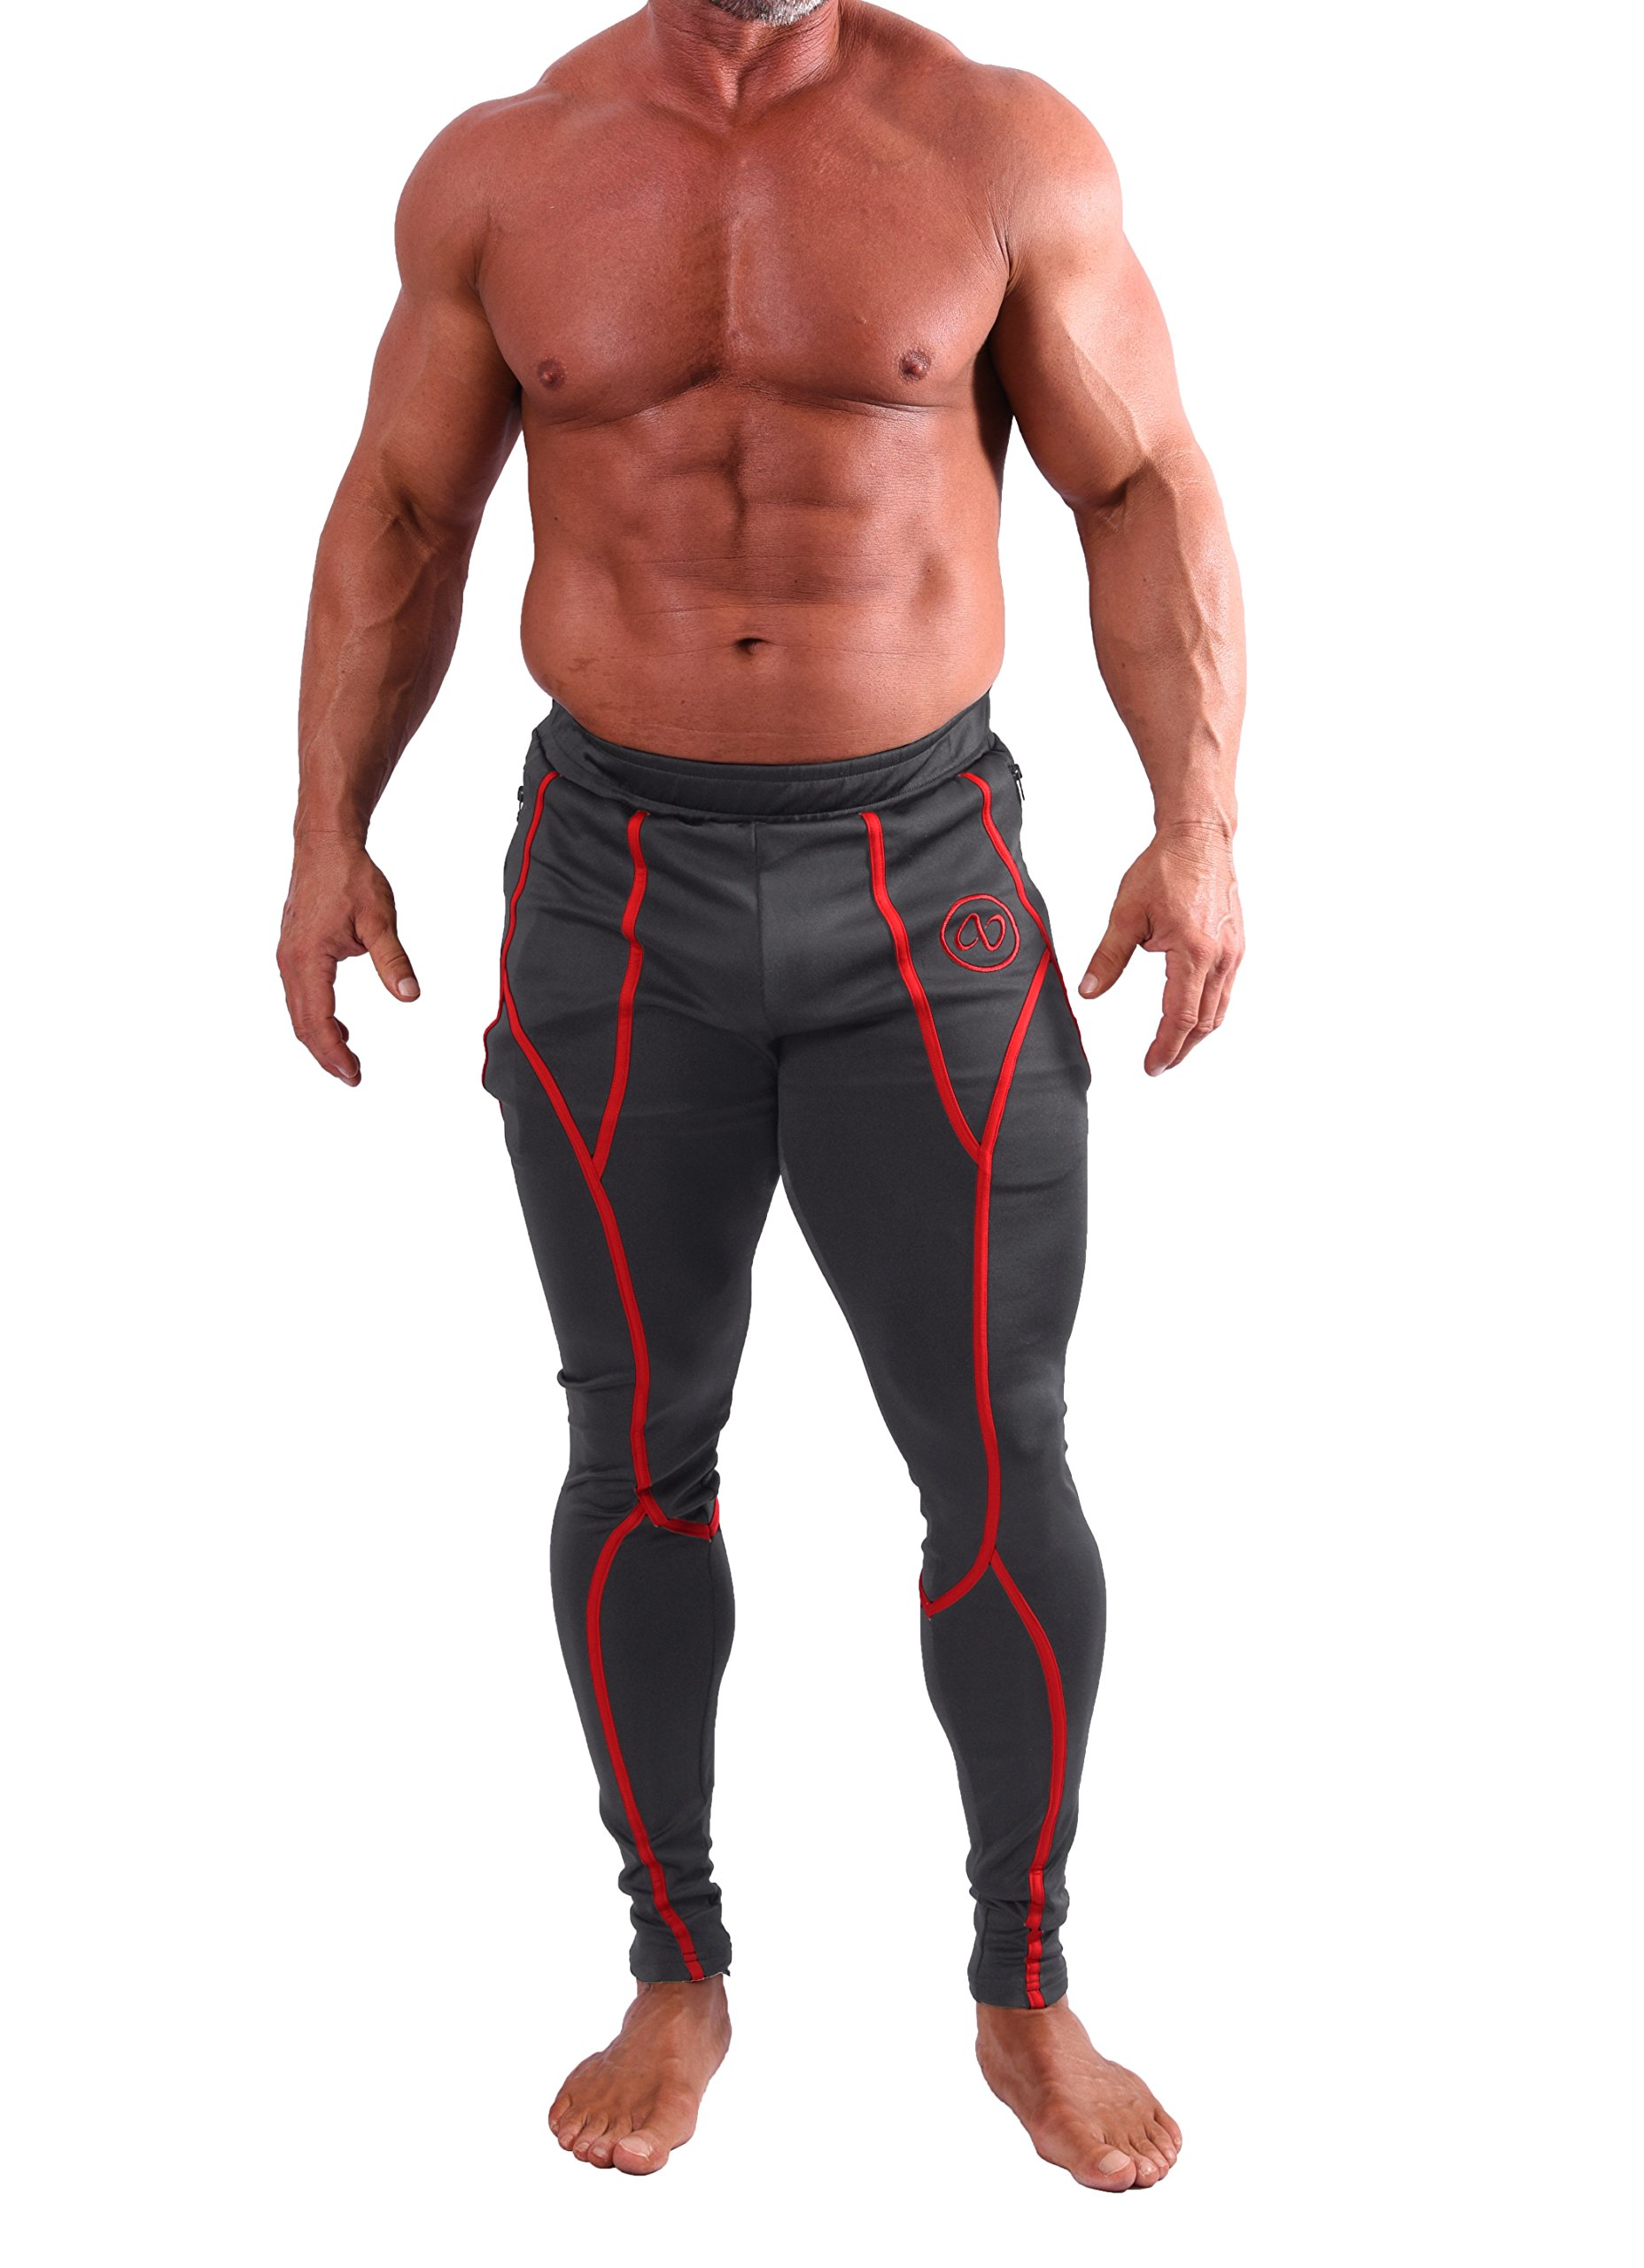 AB Butter Men's Training Bottoms Jogger Pants for Fitness Gym Workout Running